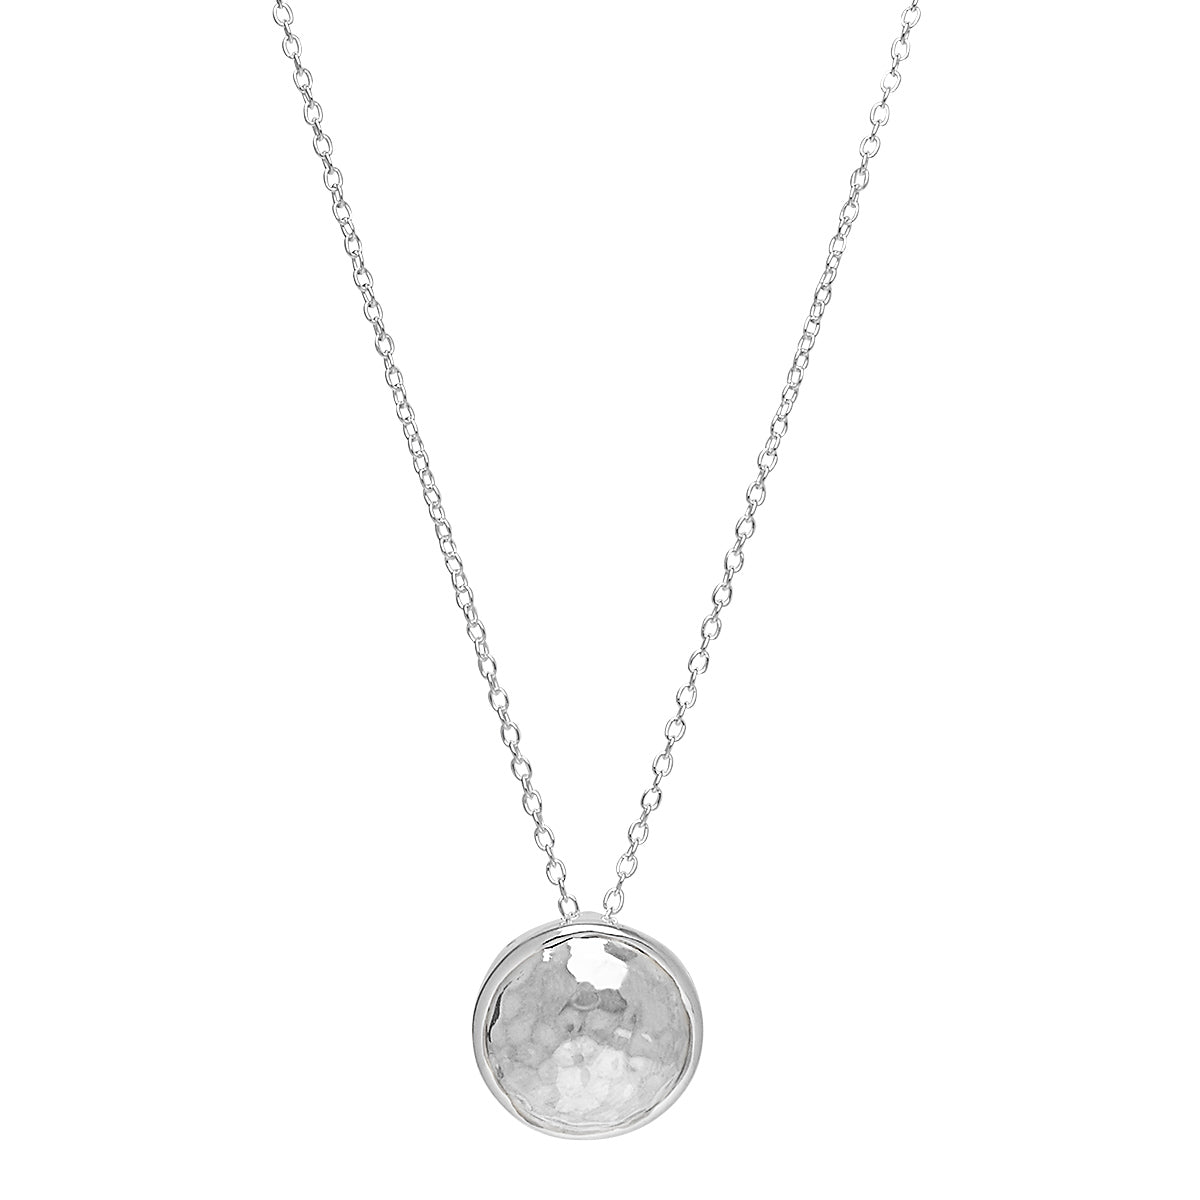 Grand Silver Glow Necklace